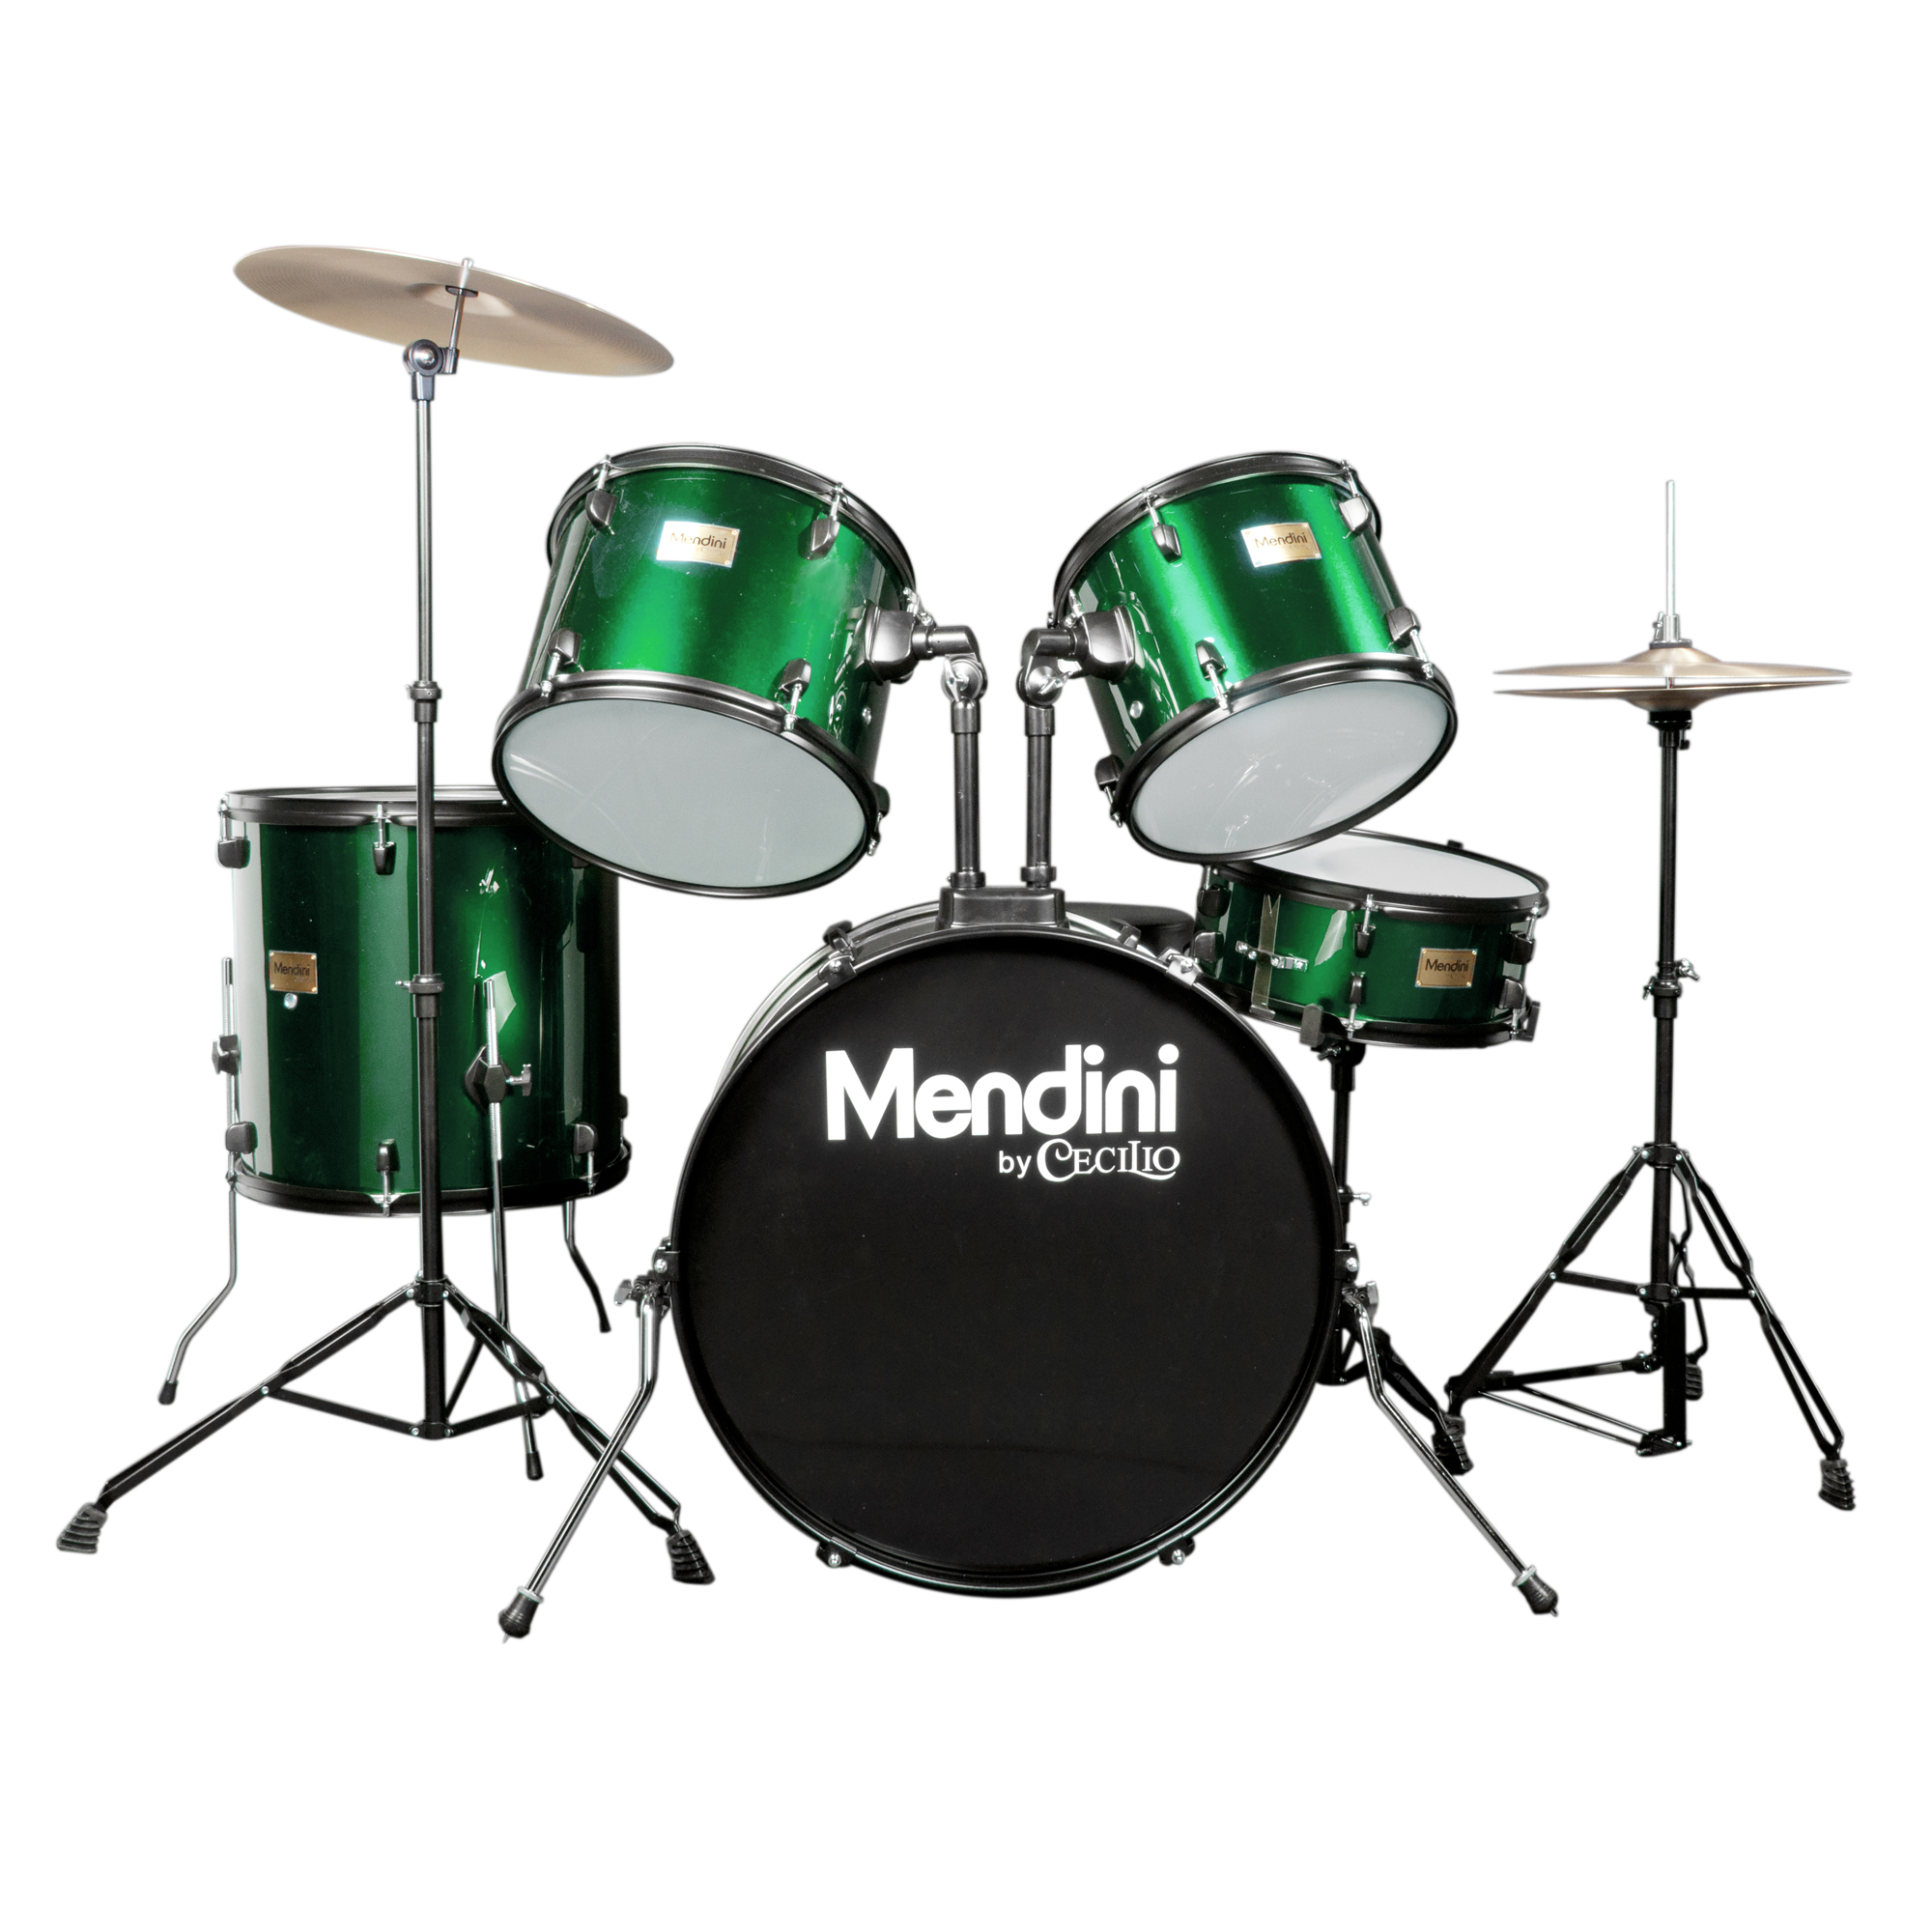 Mendini by Cecilio Complete Full Size 5-Piece Adult Drum Set w/ Cymbals Pedal Throne Sticks, Metallic Green MDS80-GN